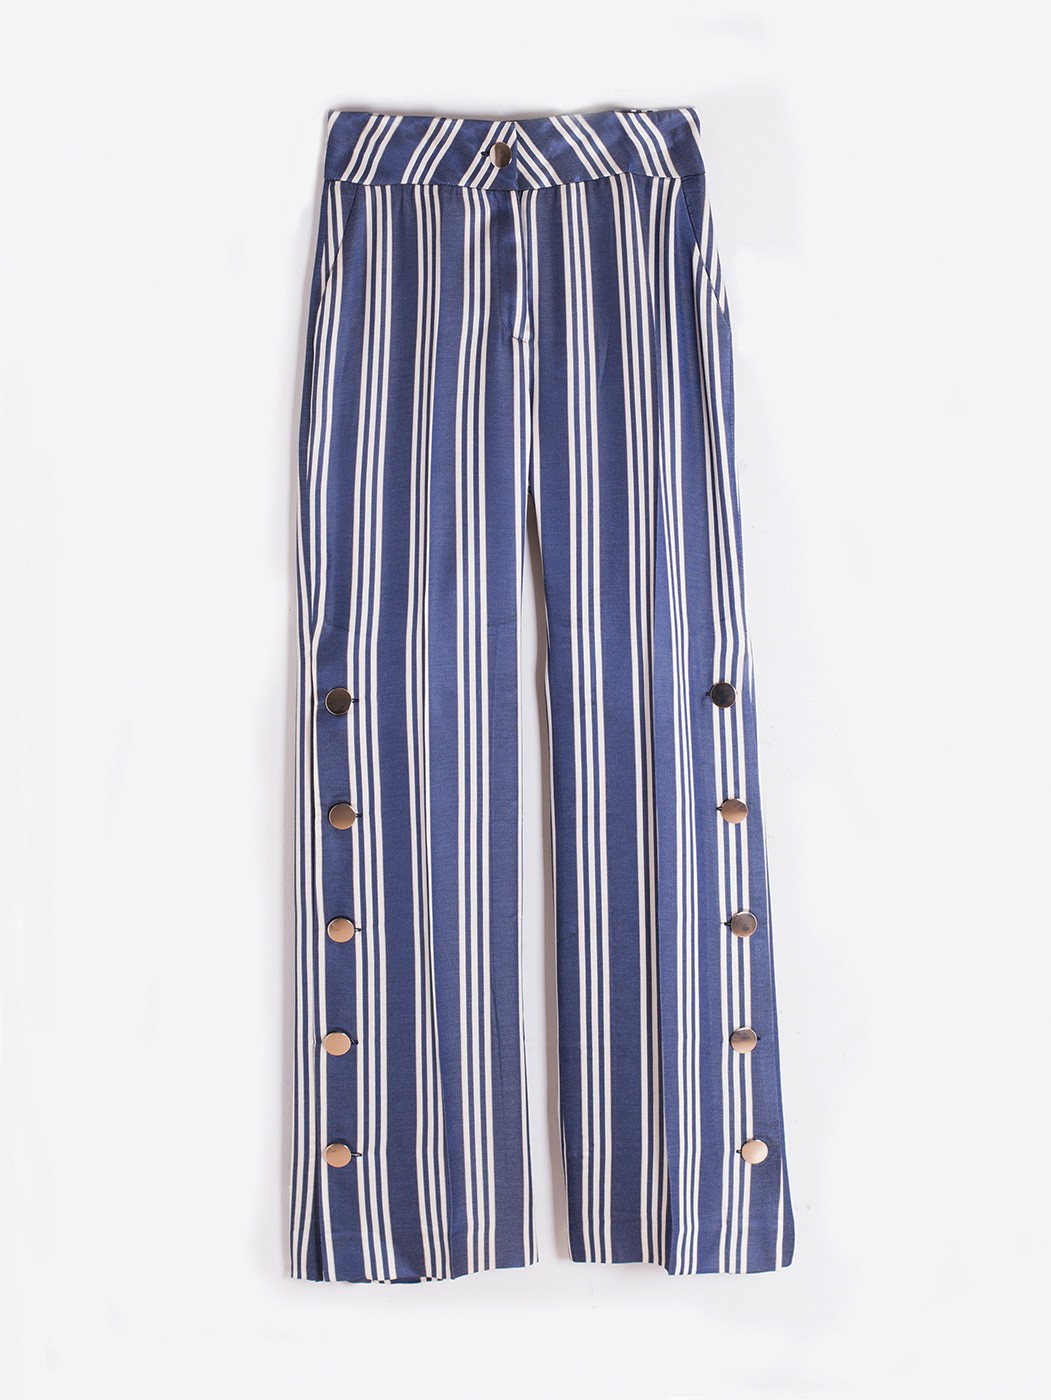 PANTALÓN NATALIA NAVY STRIPES HR